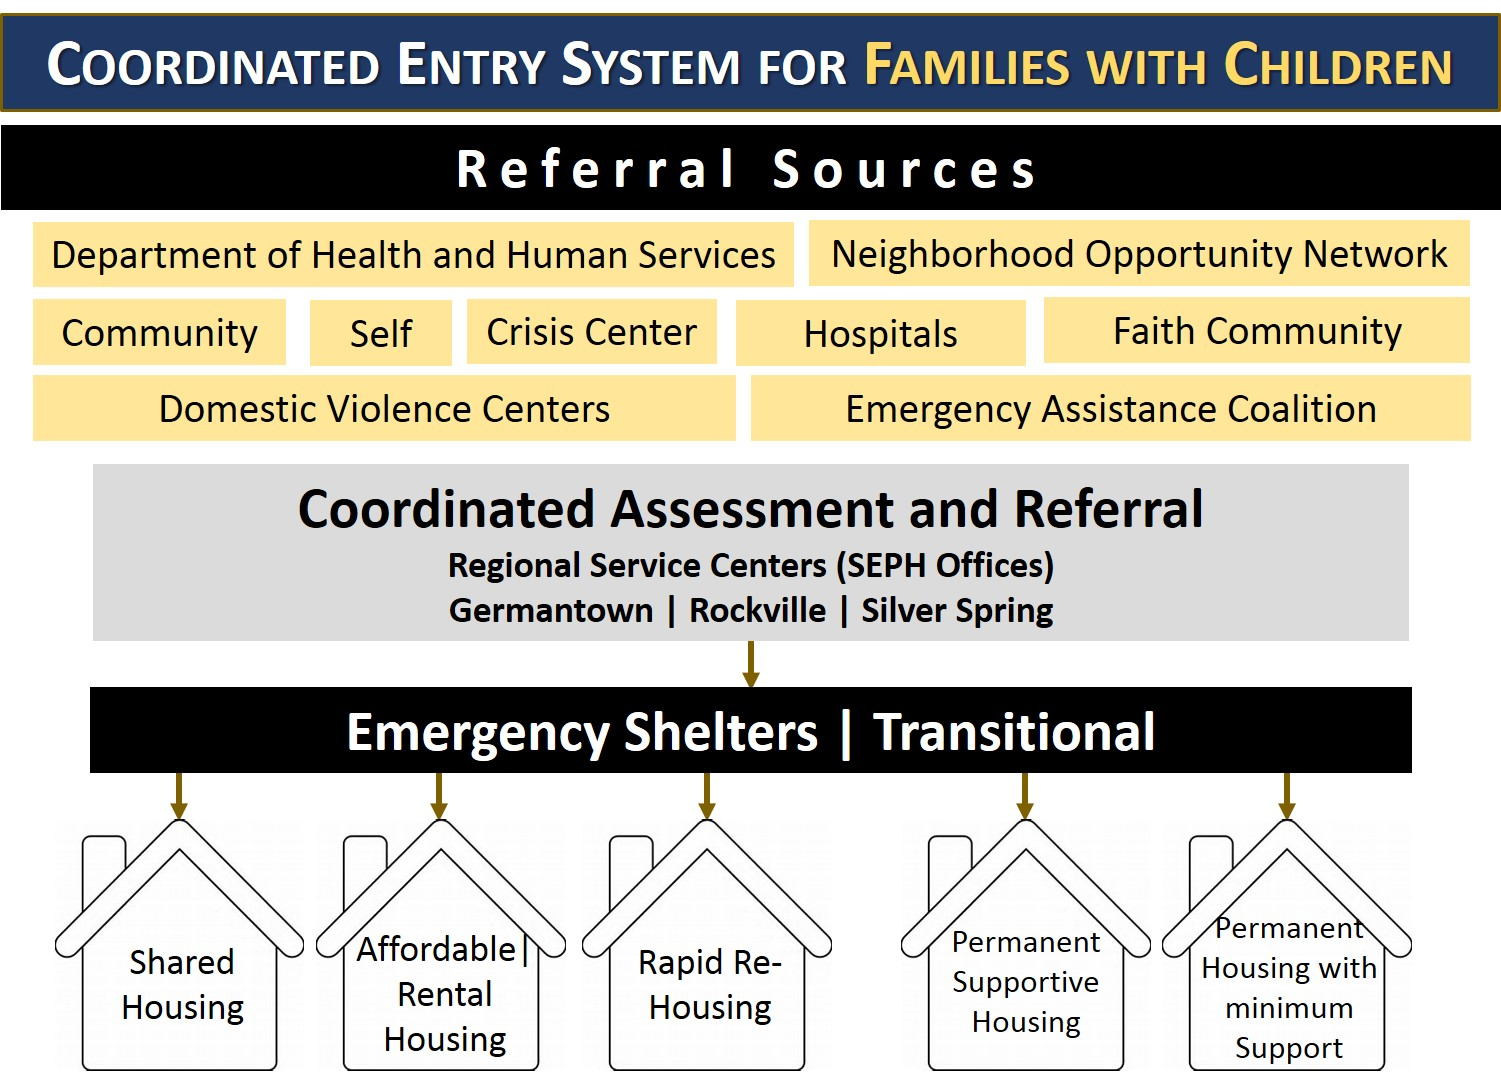 Coordinated Entry System for Families with Children